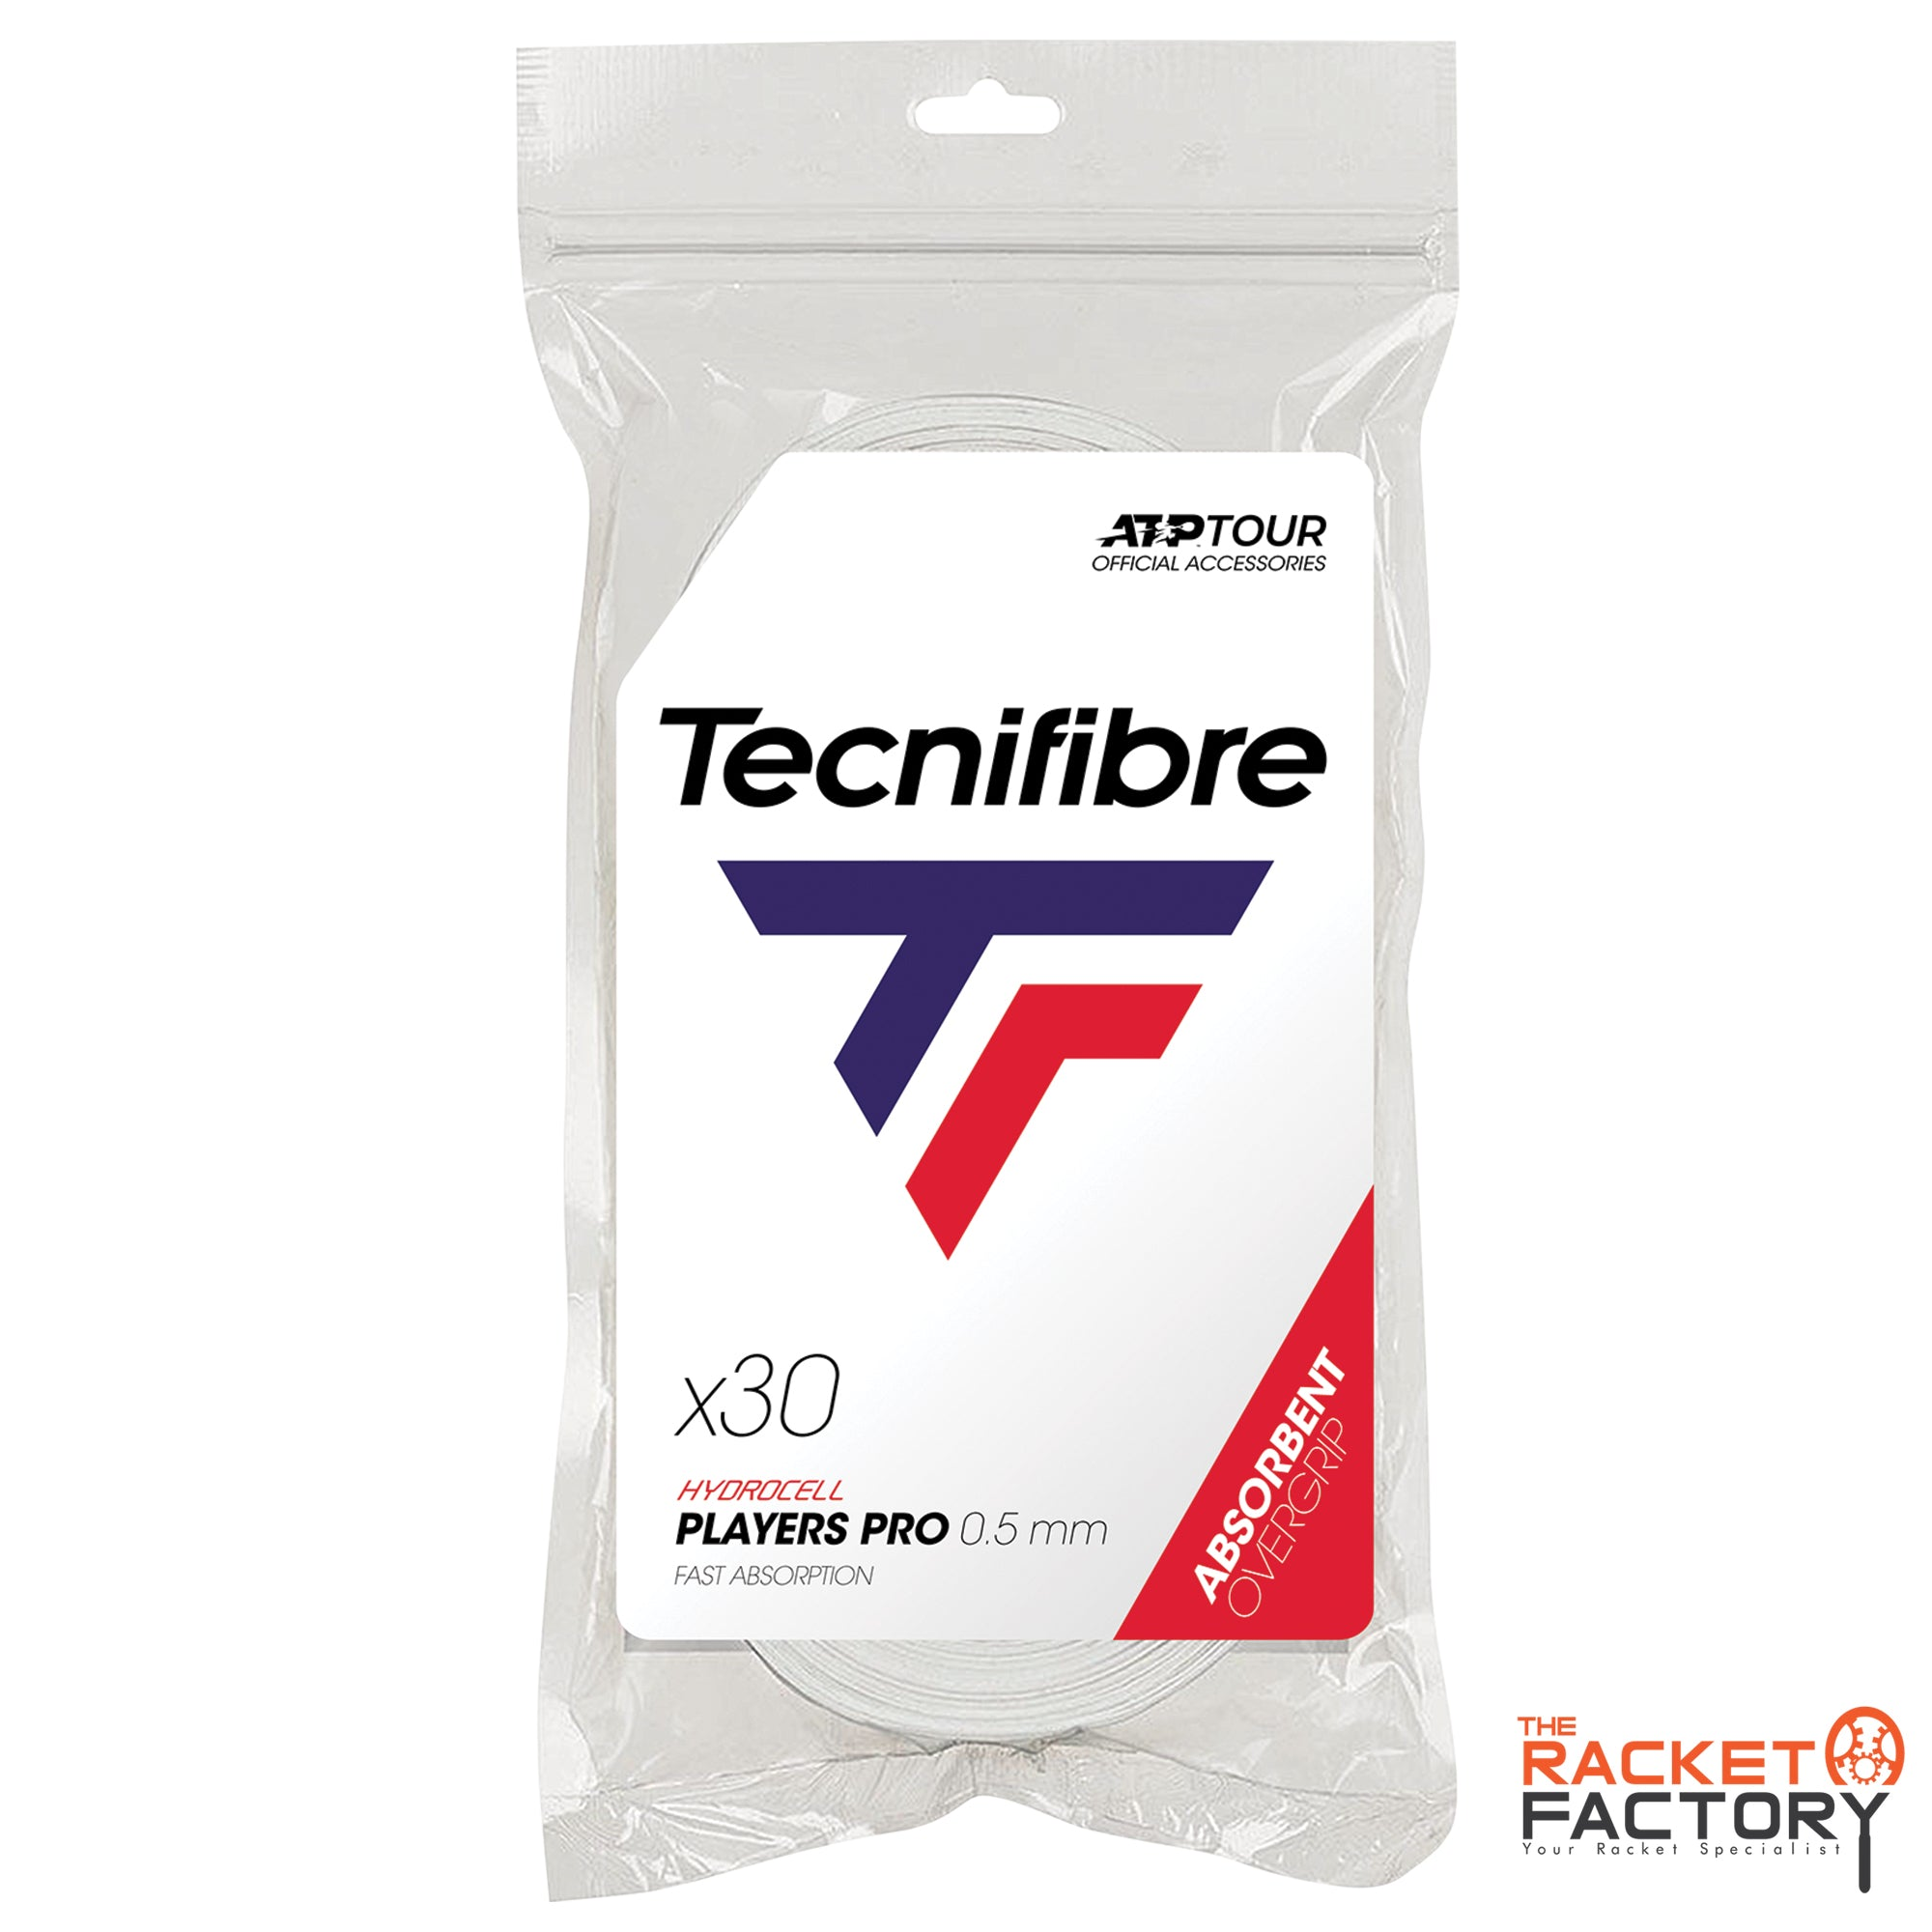 Tecnifibre ATP Players Pro Over Grip - Pack of 30